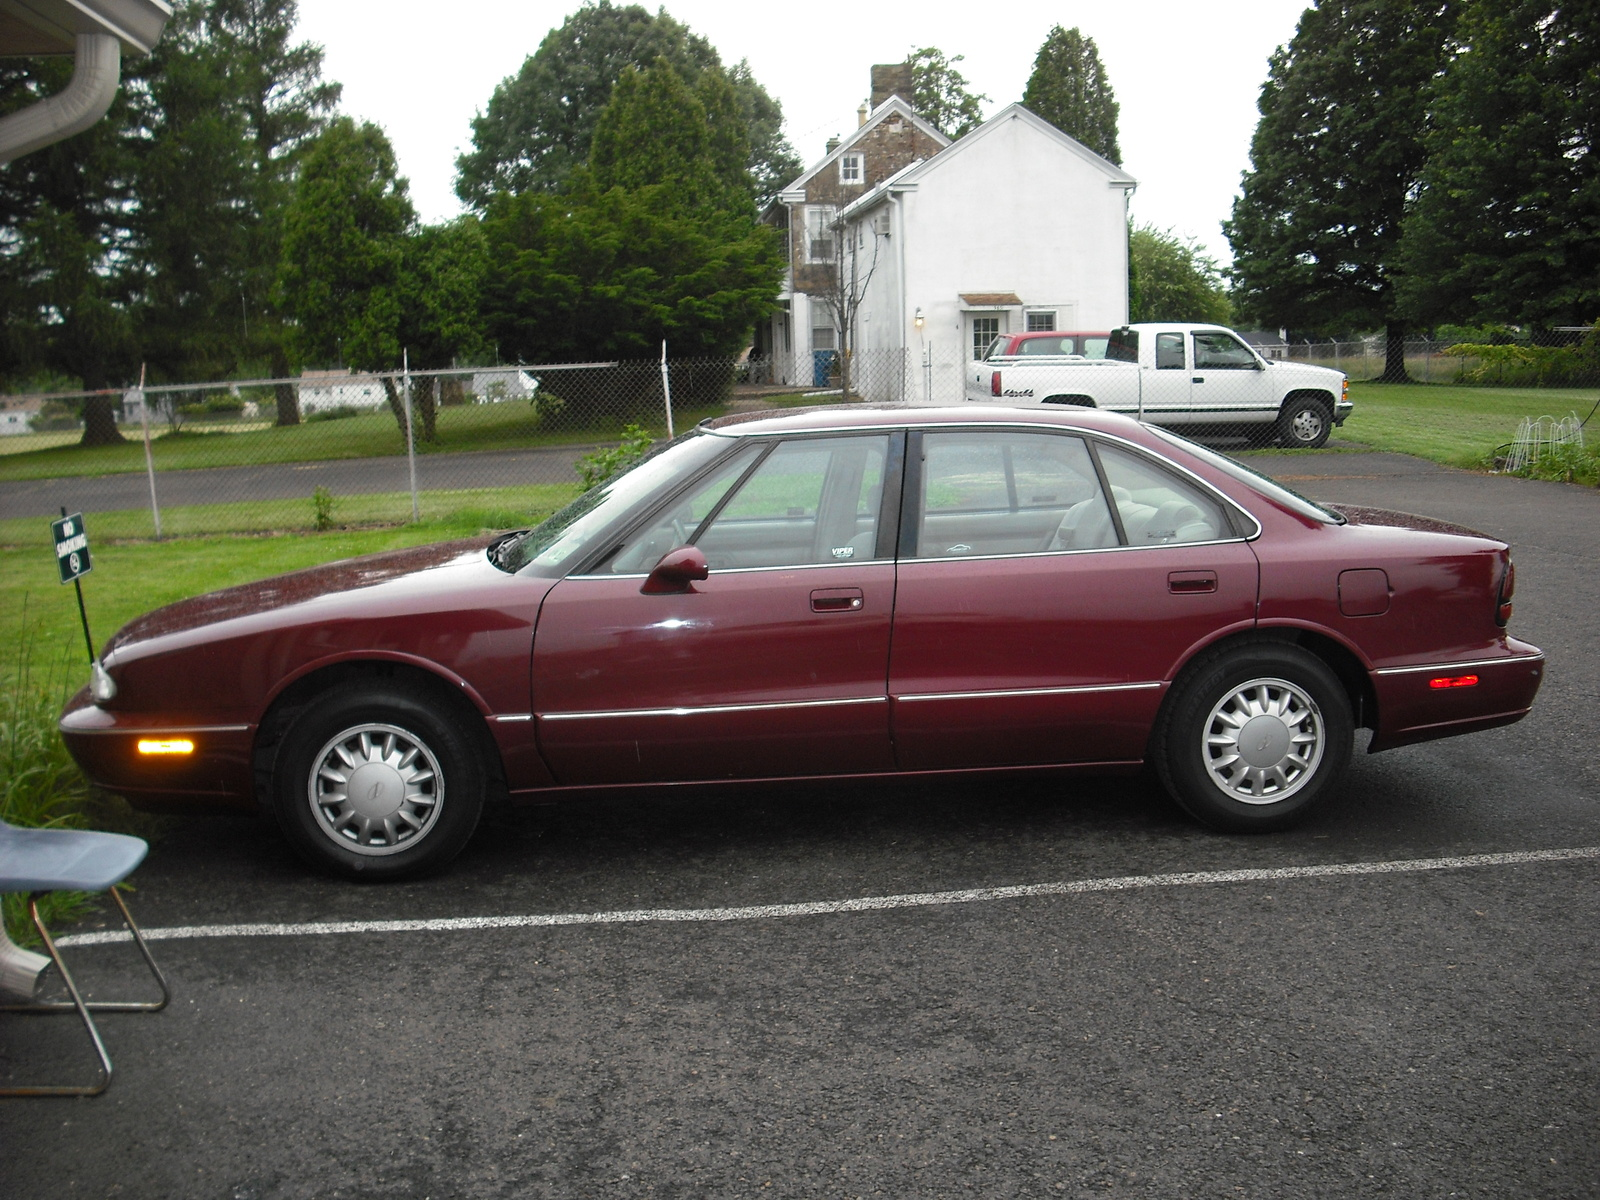 The 1995 Oldsmobile 88 is created by Oldsmobile.